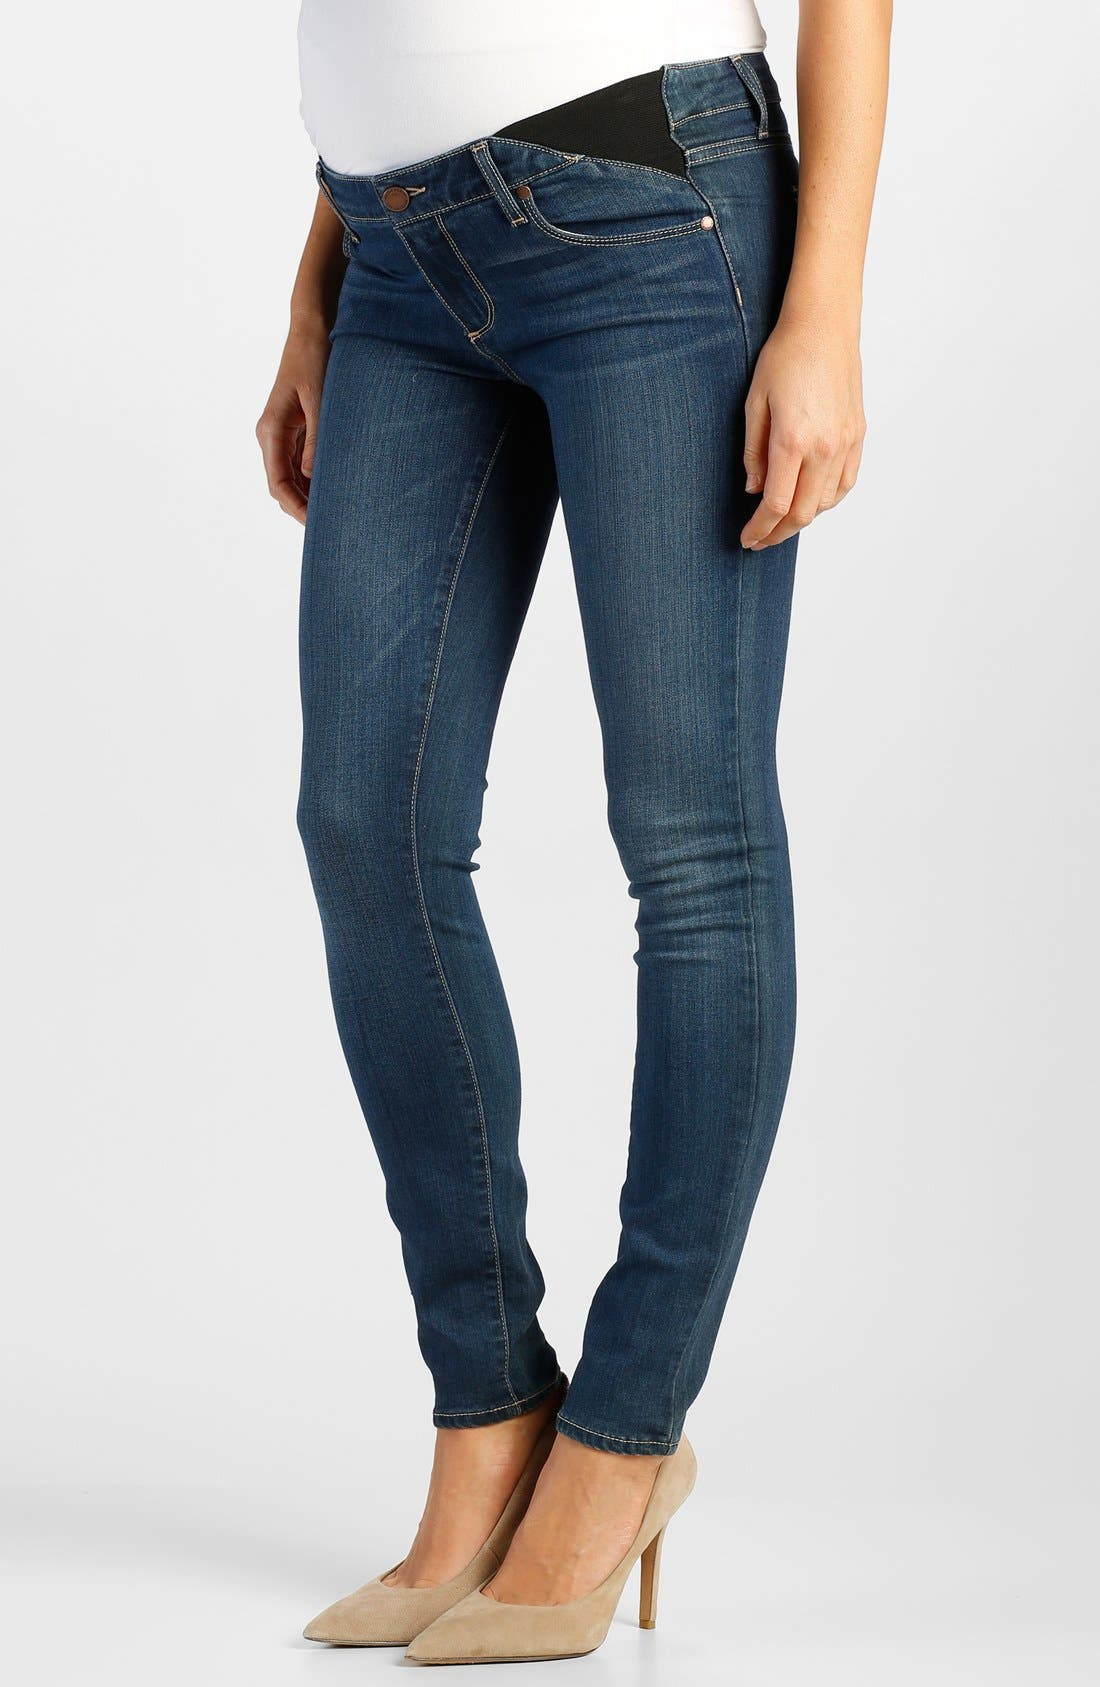 Main Image - Paige Denim 'Transcend - Verdugo' Maternity Ankle Jeans with Side Gussets (Lex)